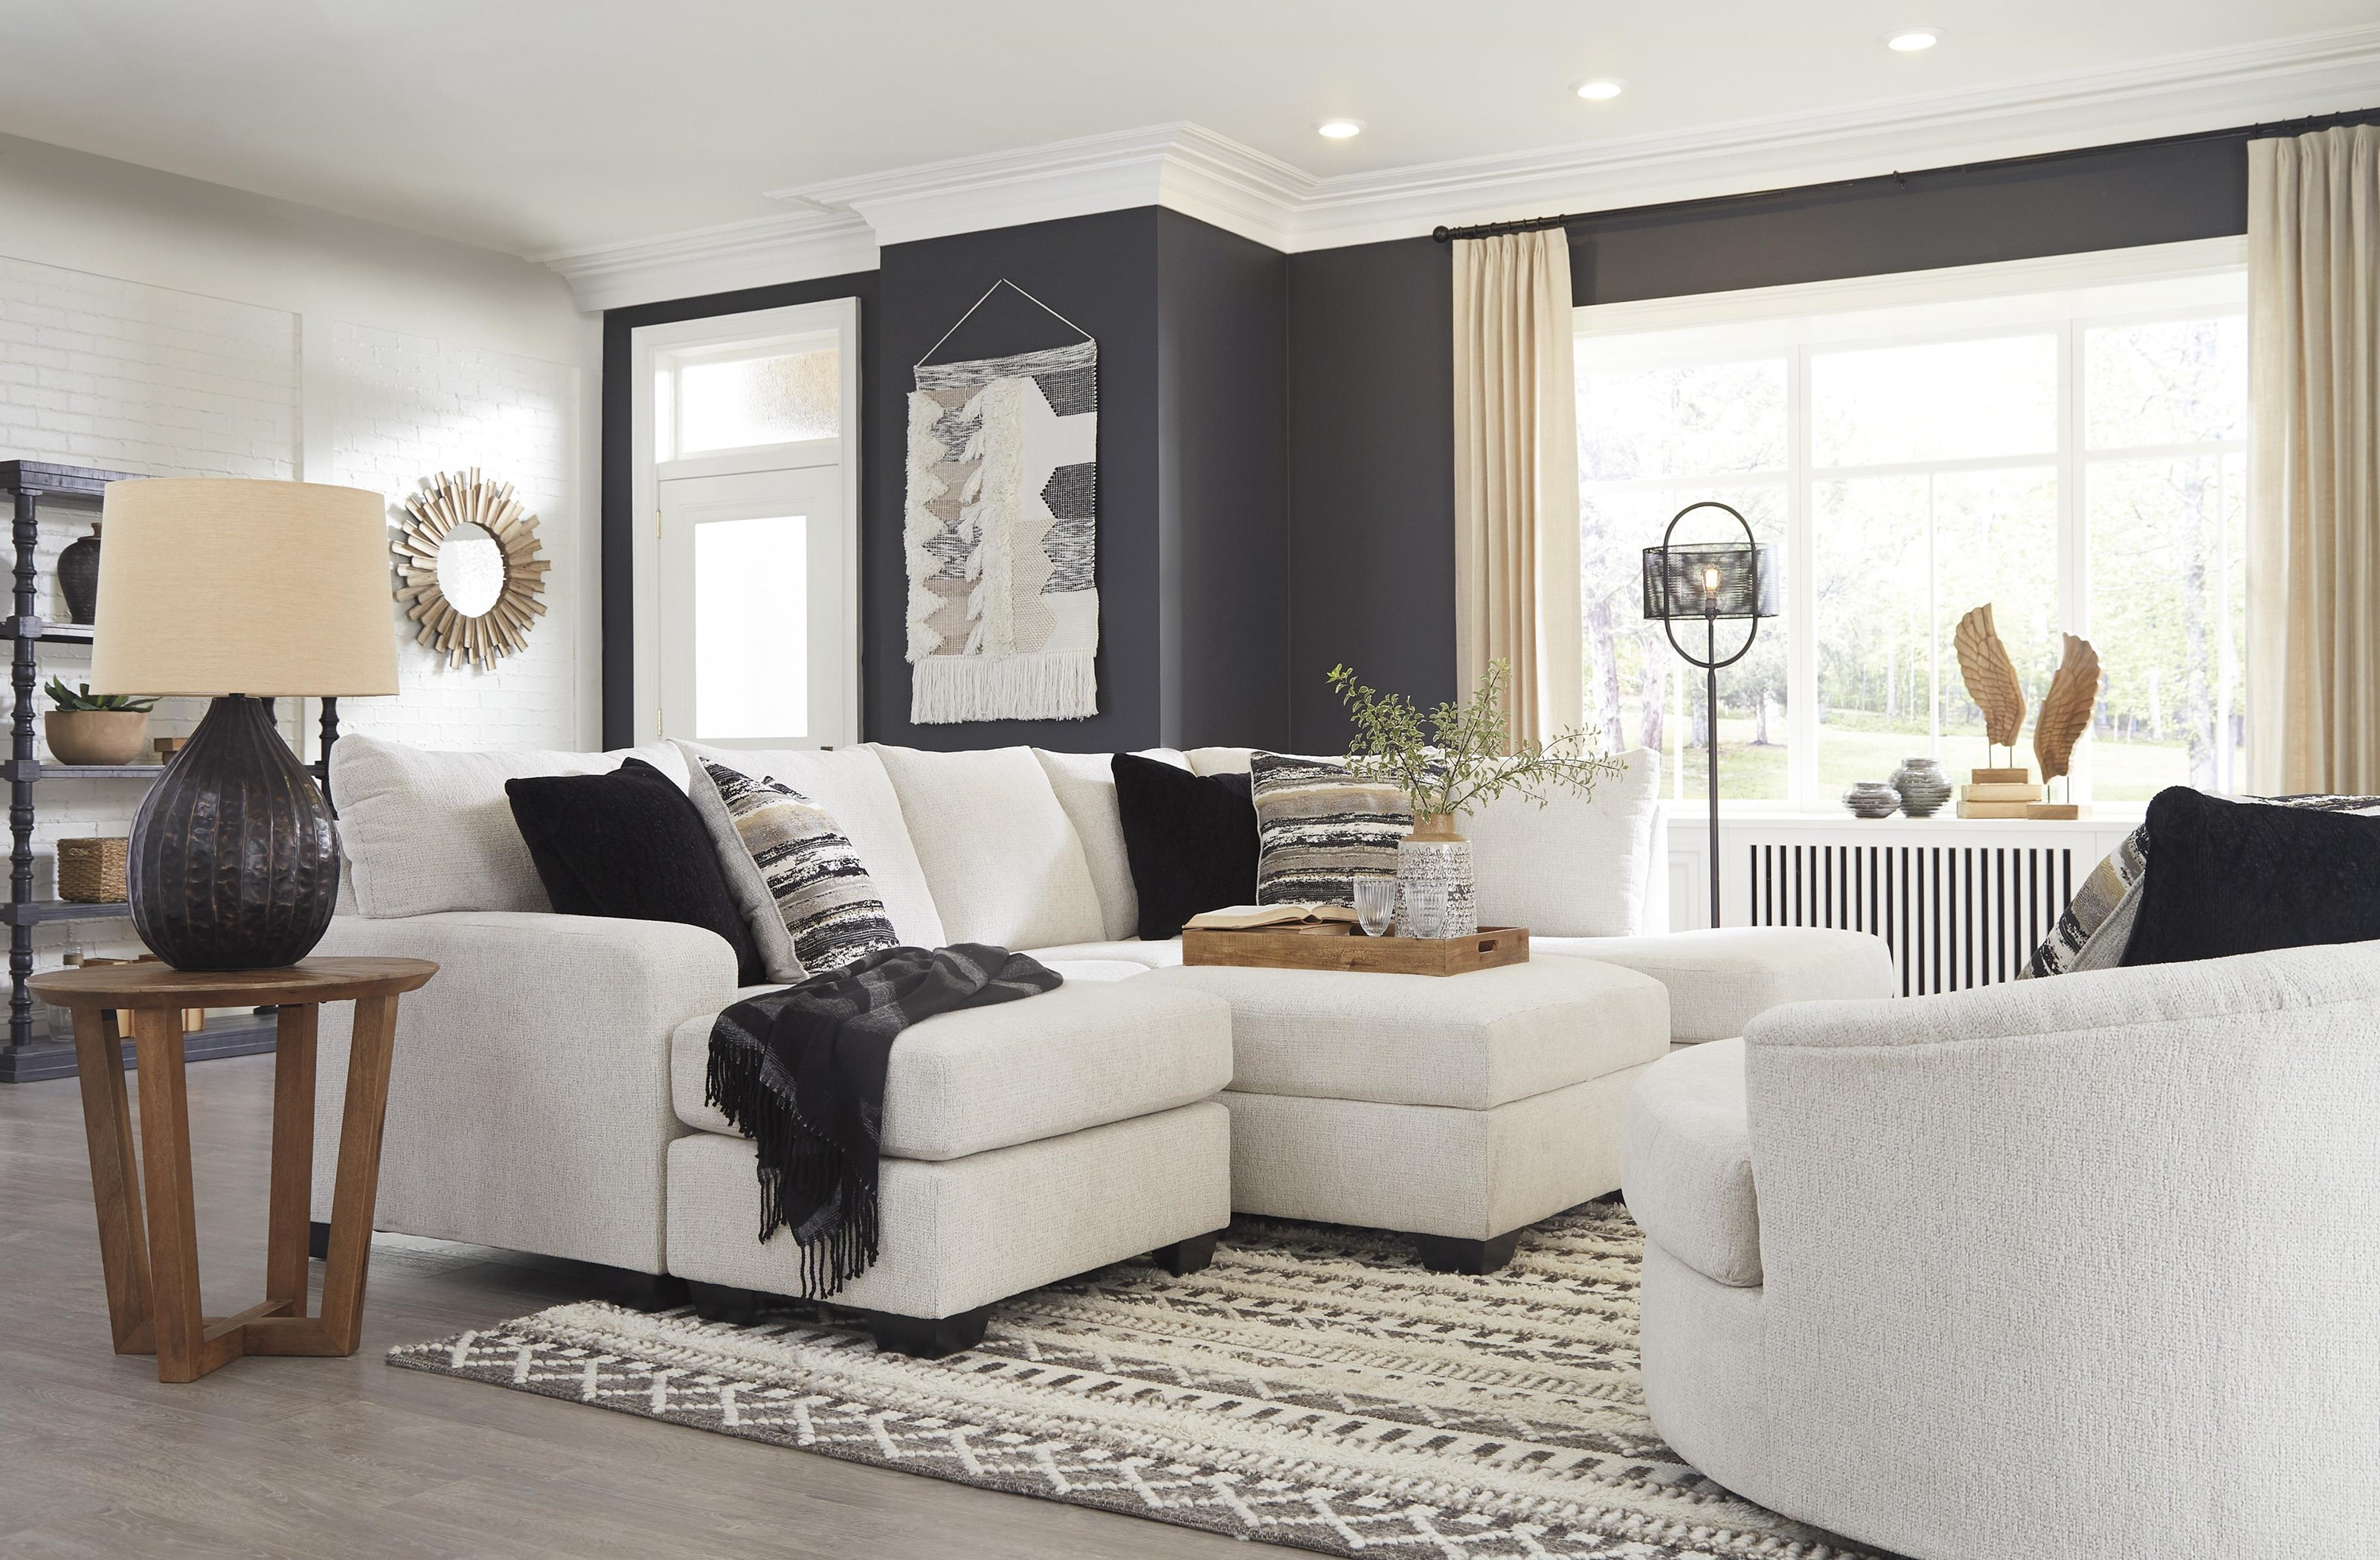 2 PC Sectional And Swivel Chair Set